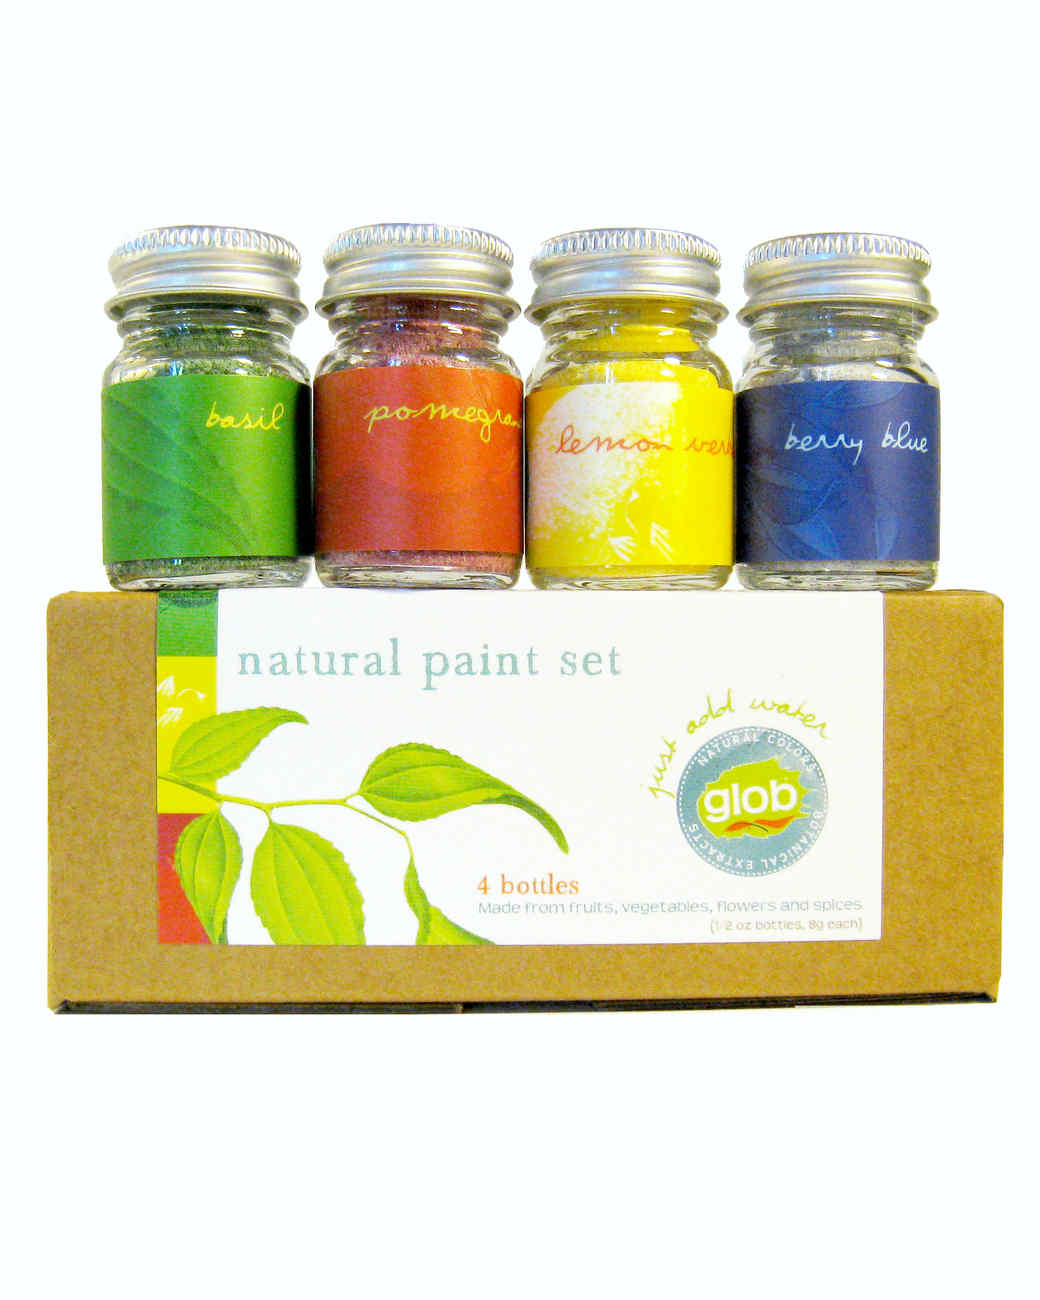 glob-natural-paint-set.jpg